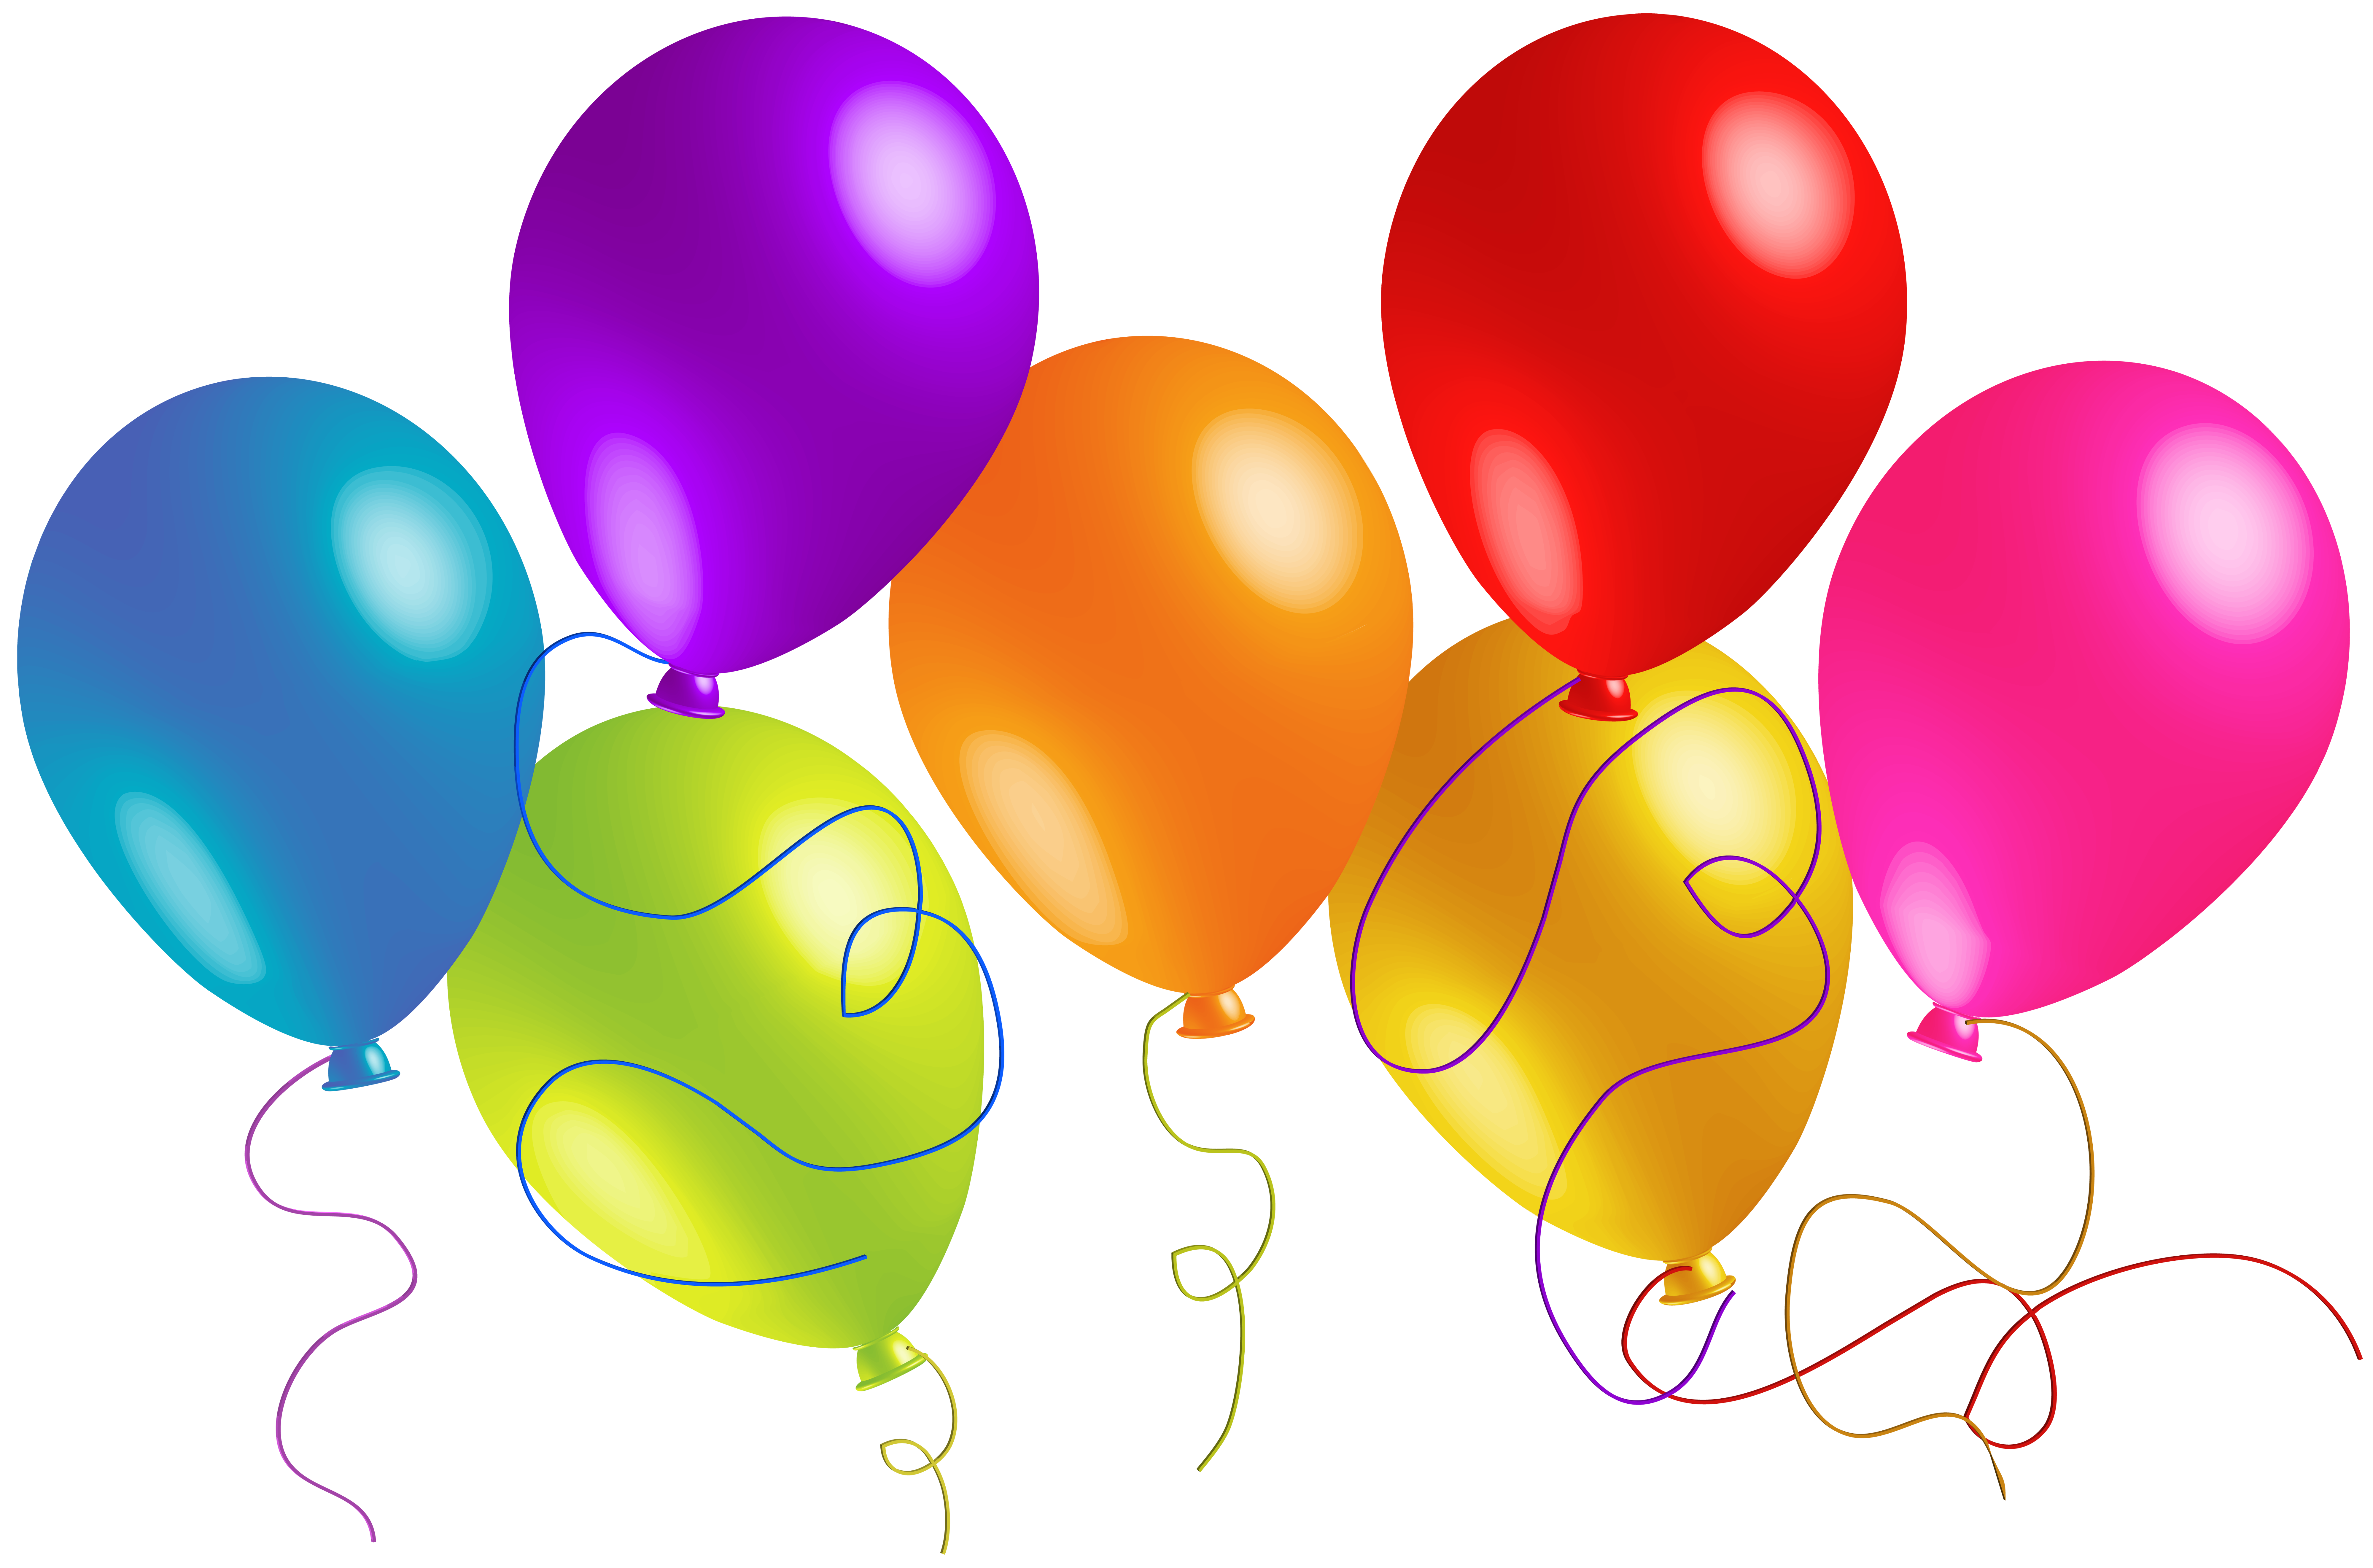 Ballon clipart. Large transparent colorful balloons